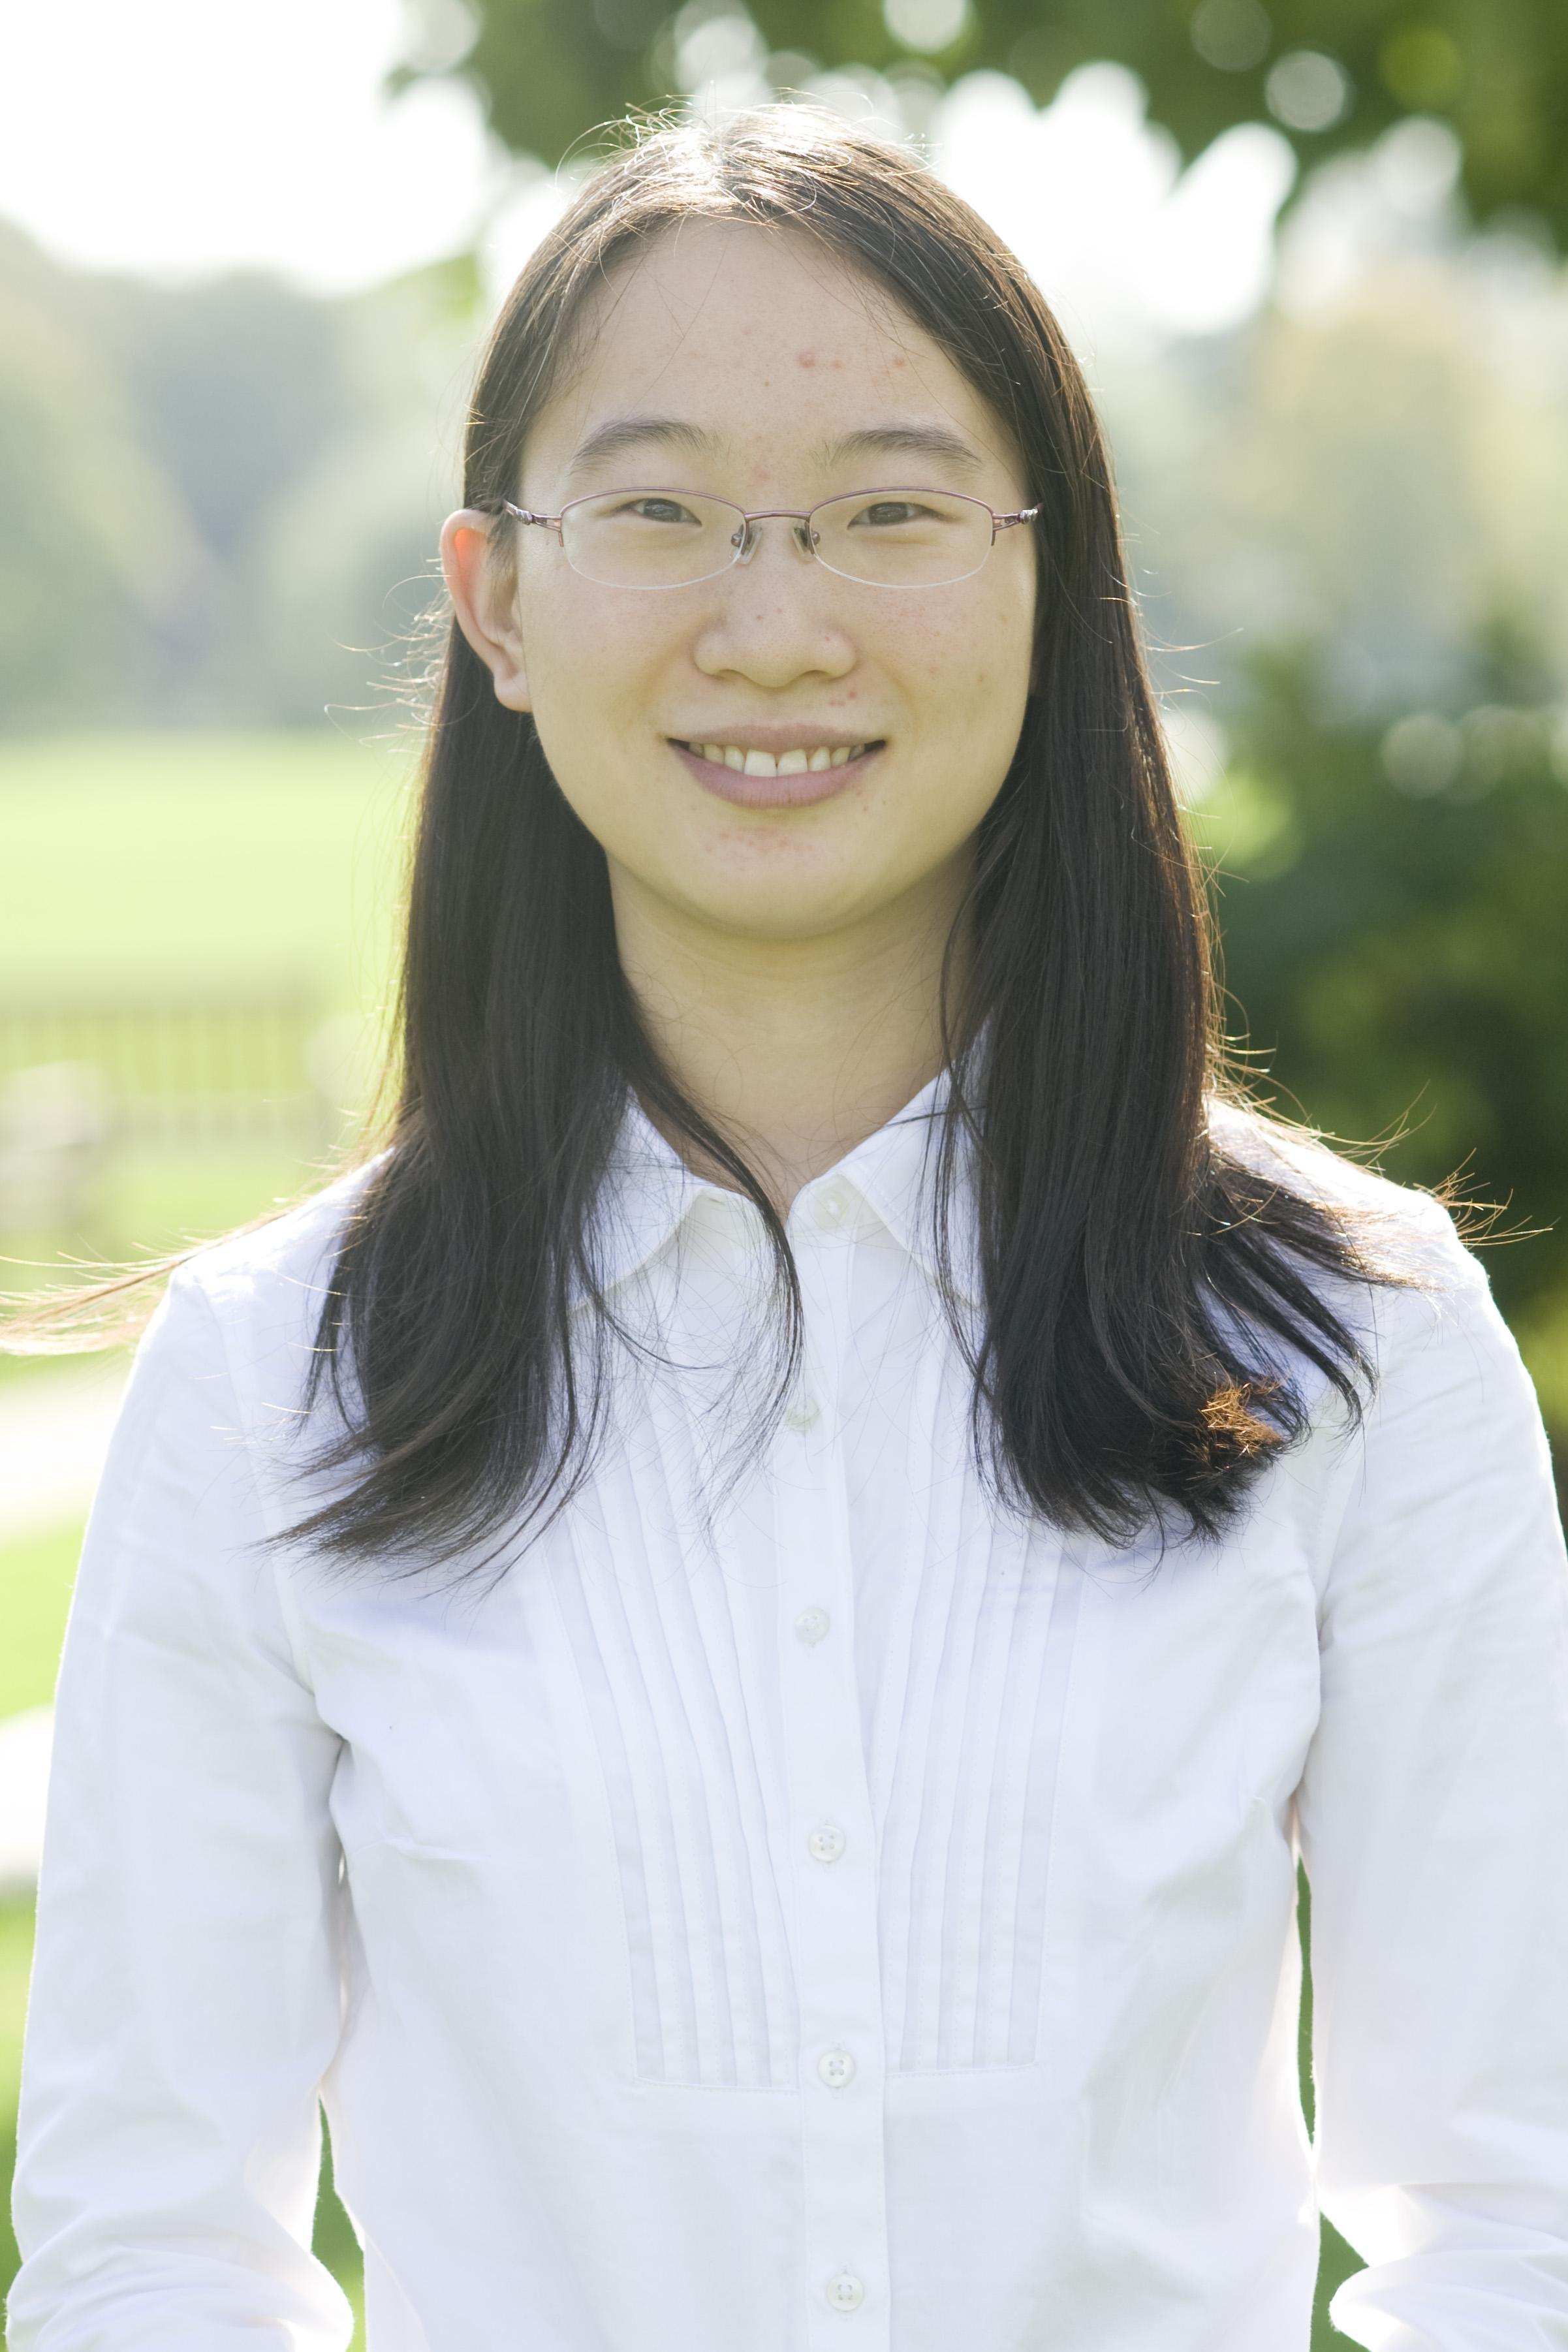 Jingchen Hou Comment Piece on Supplying Innovation